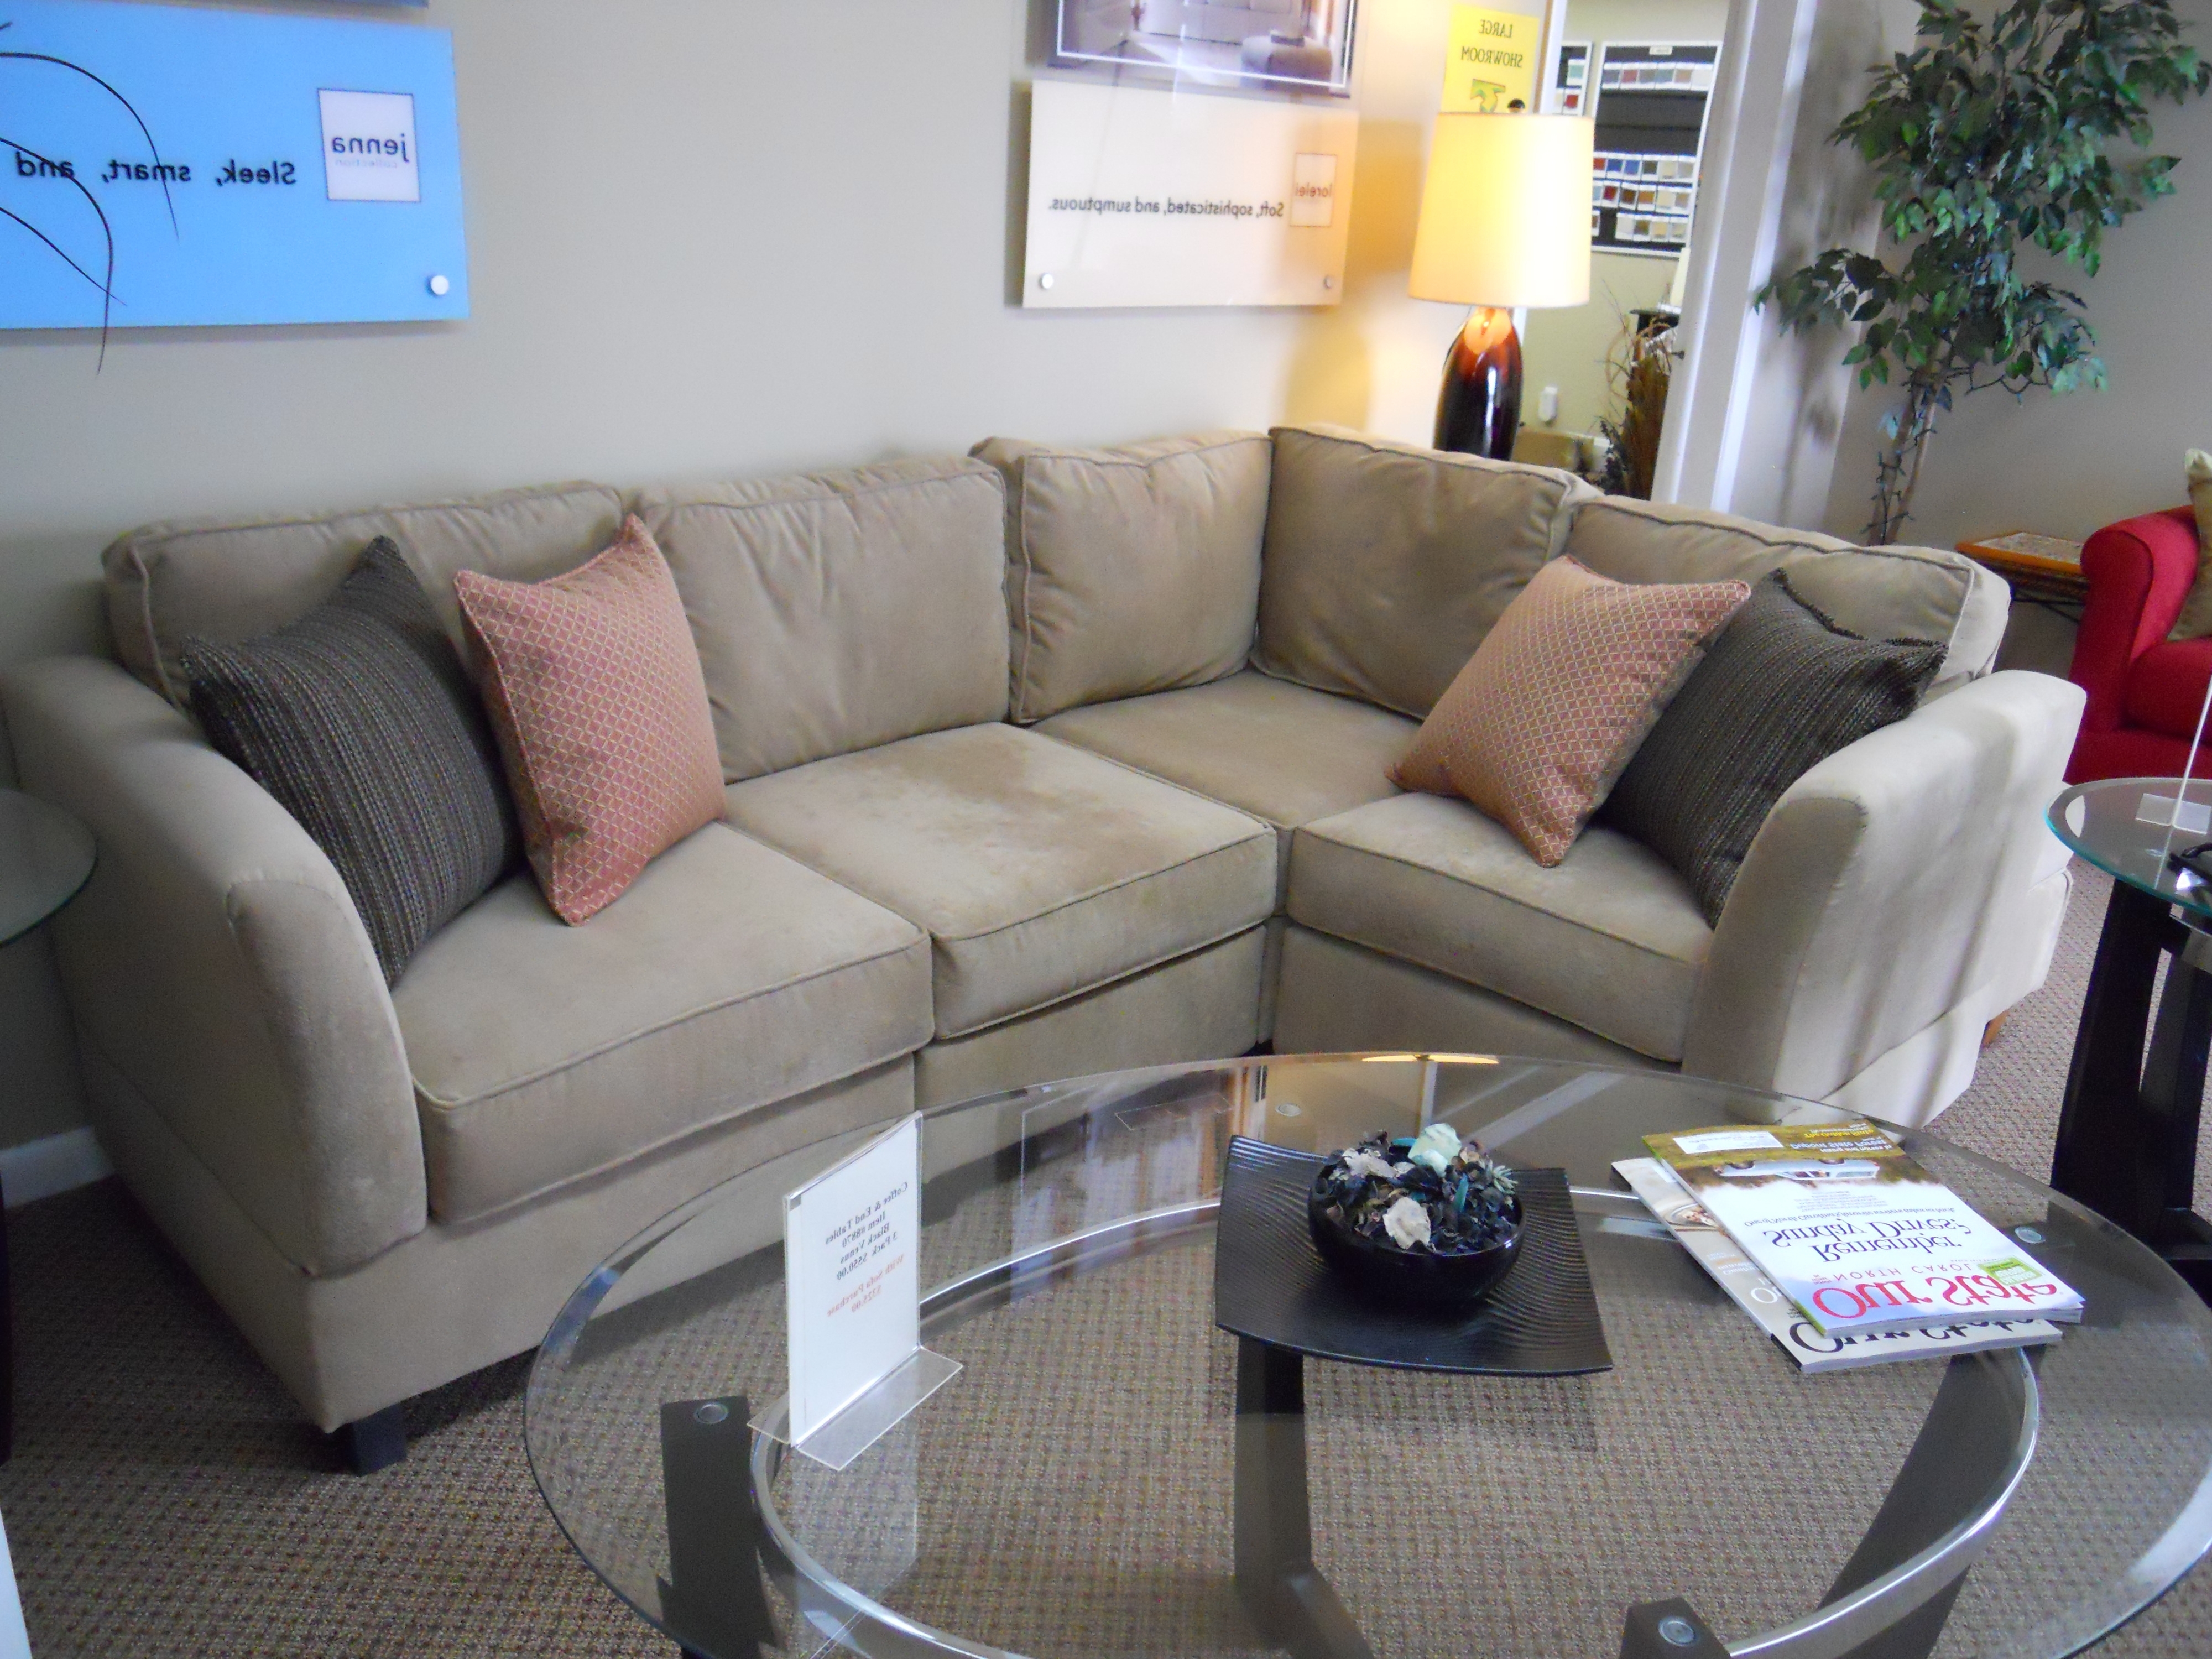 Perfect Apartment Sectional Sofa 51 Contemporary Sofa Inspiration Intended For 2017 Mini Sectional Sofas (View 11 of 15)